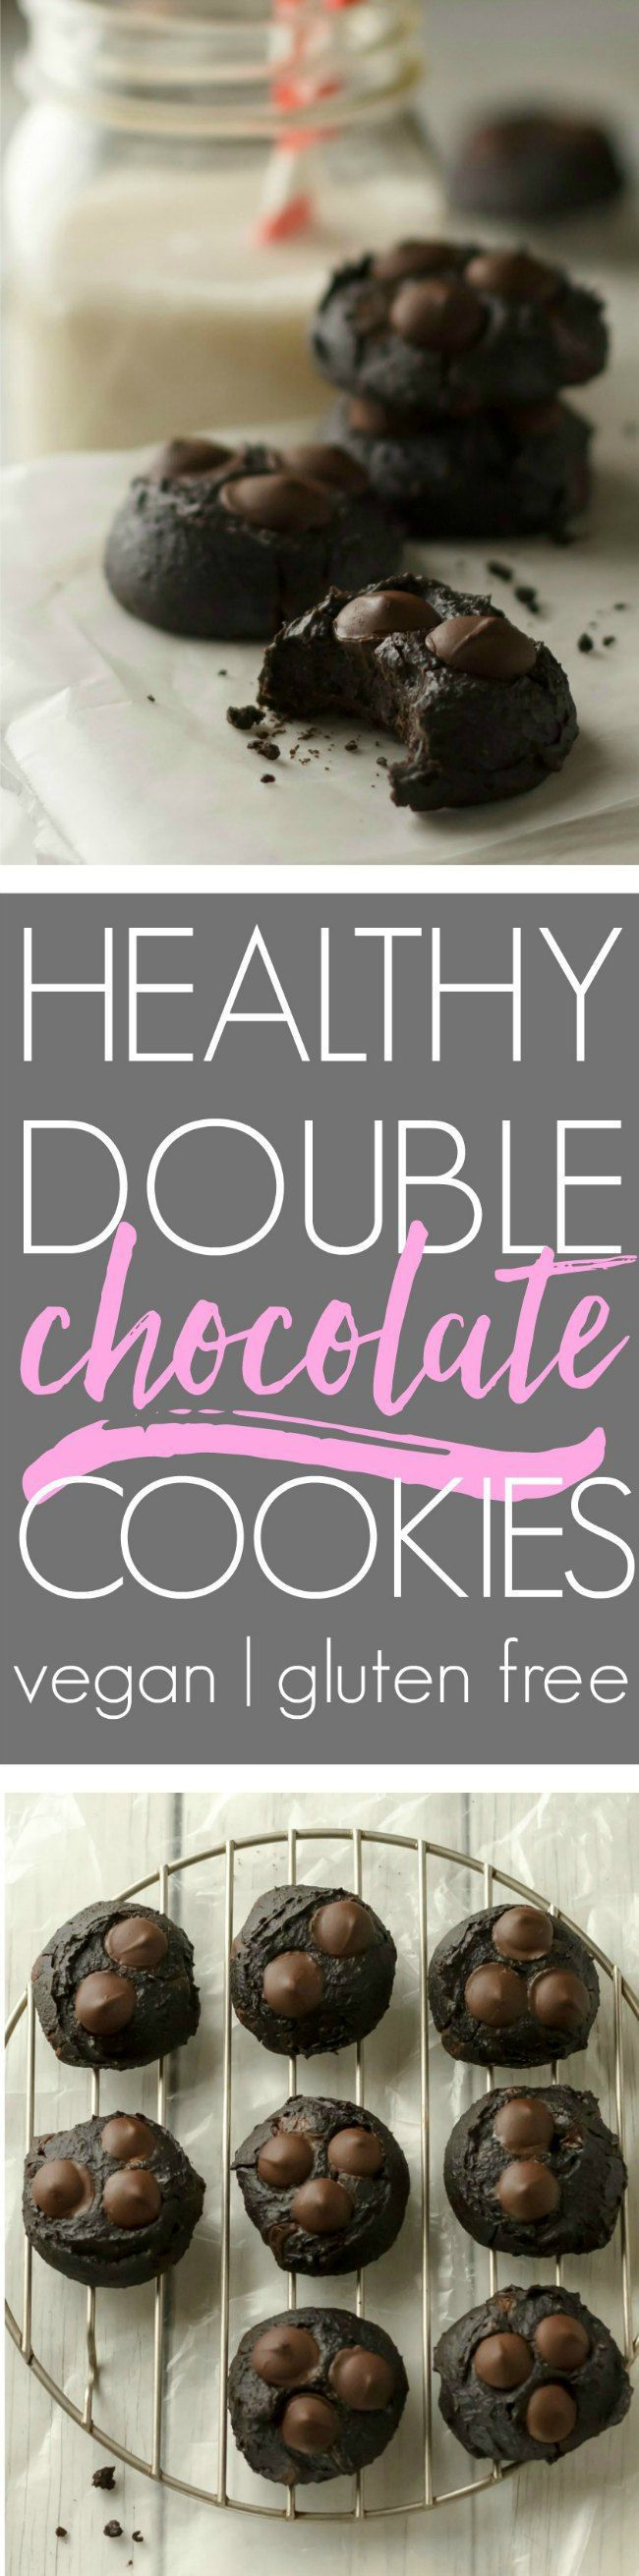 Healthy chocolate cookies that taste AMAZING! Real food ingredients, no refined sugar, naturally vegan and gluten free.